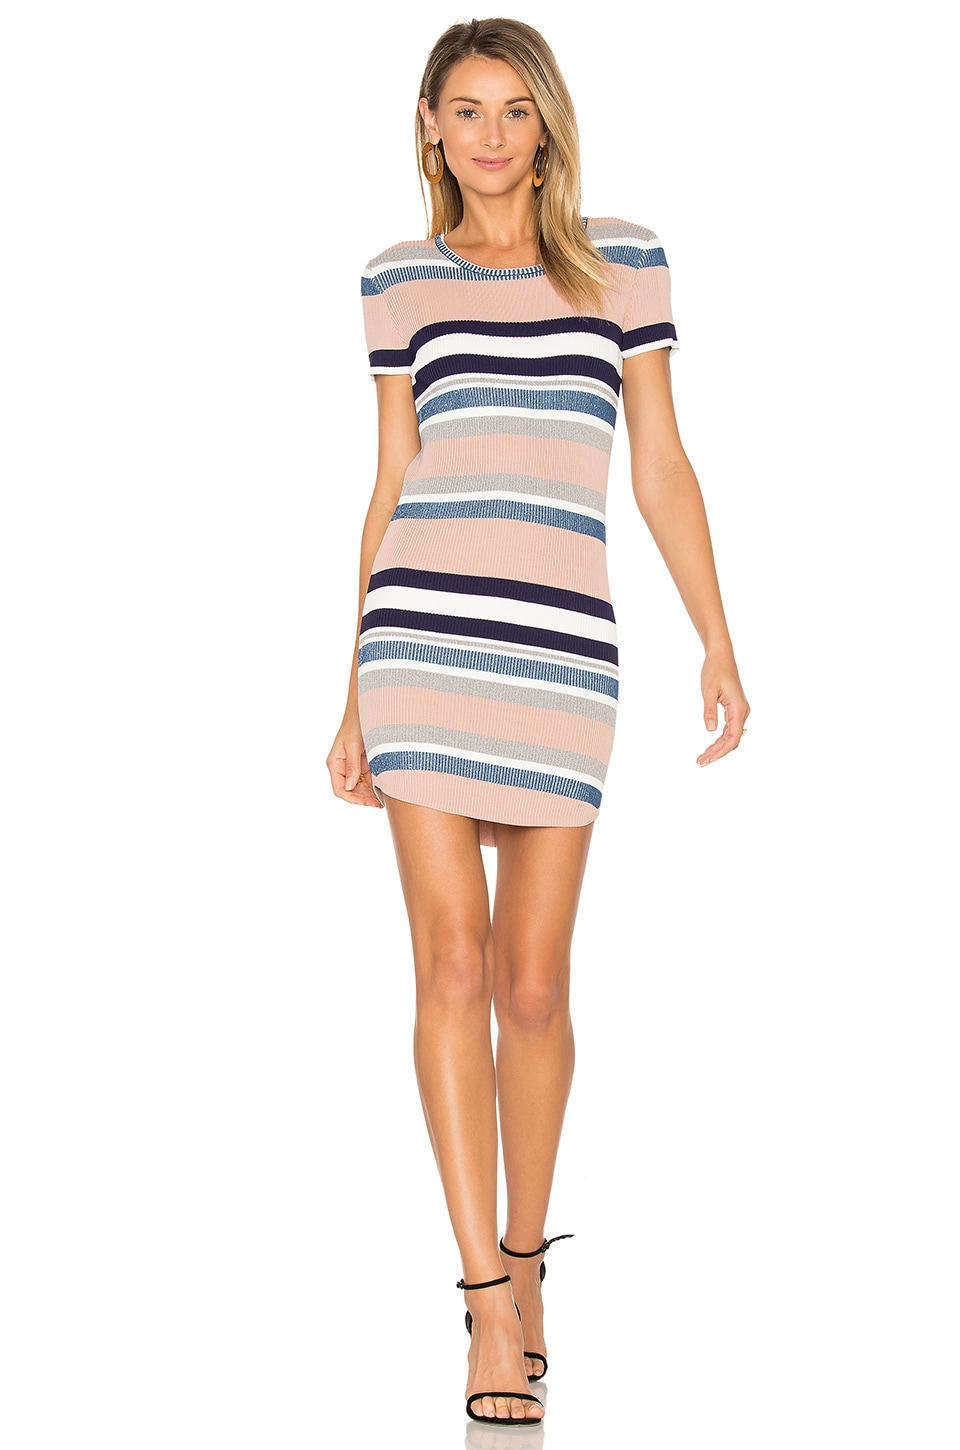 Callahan Stripe Cap Sleeve Dress in Multi